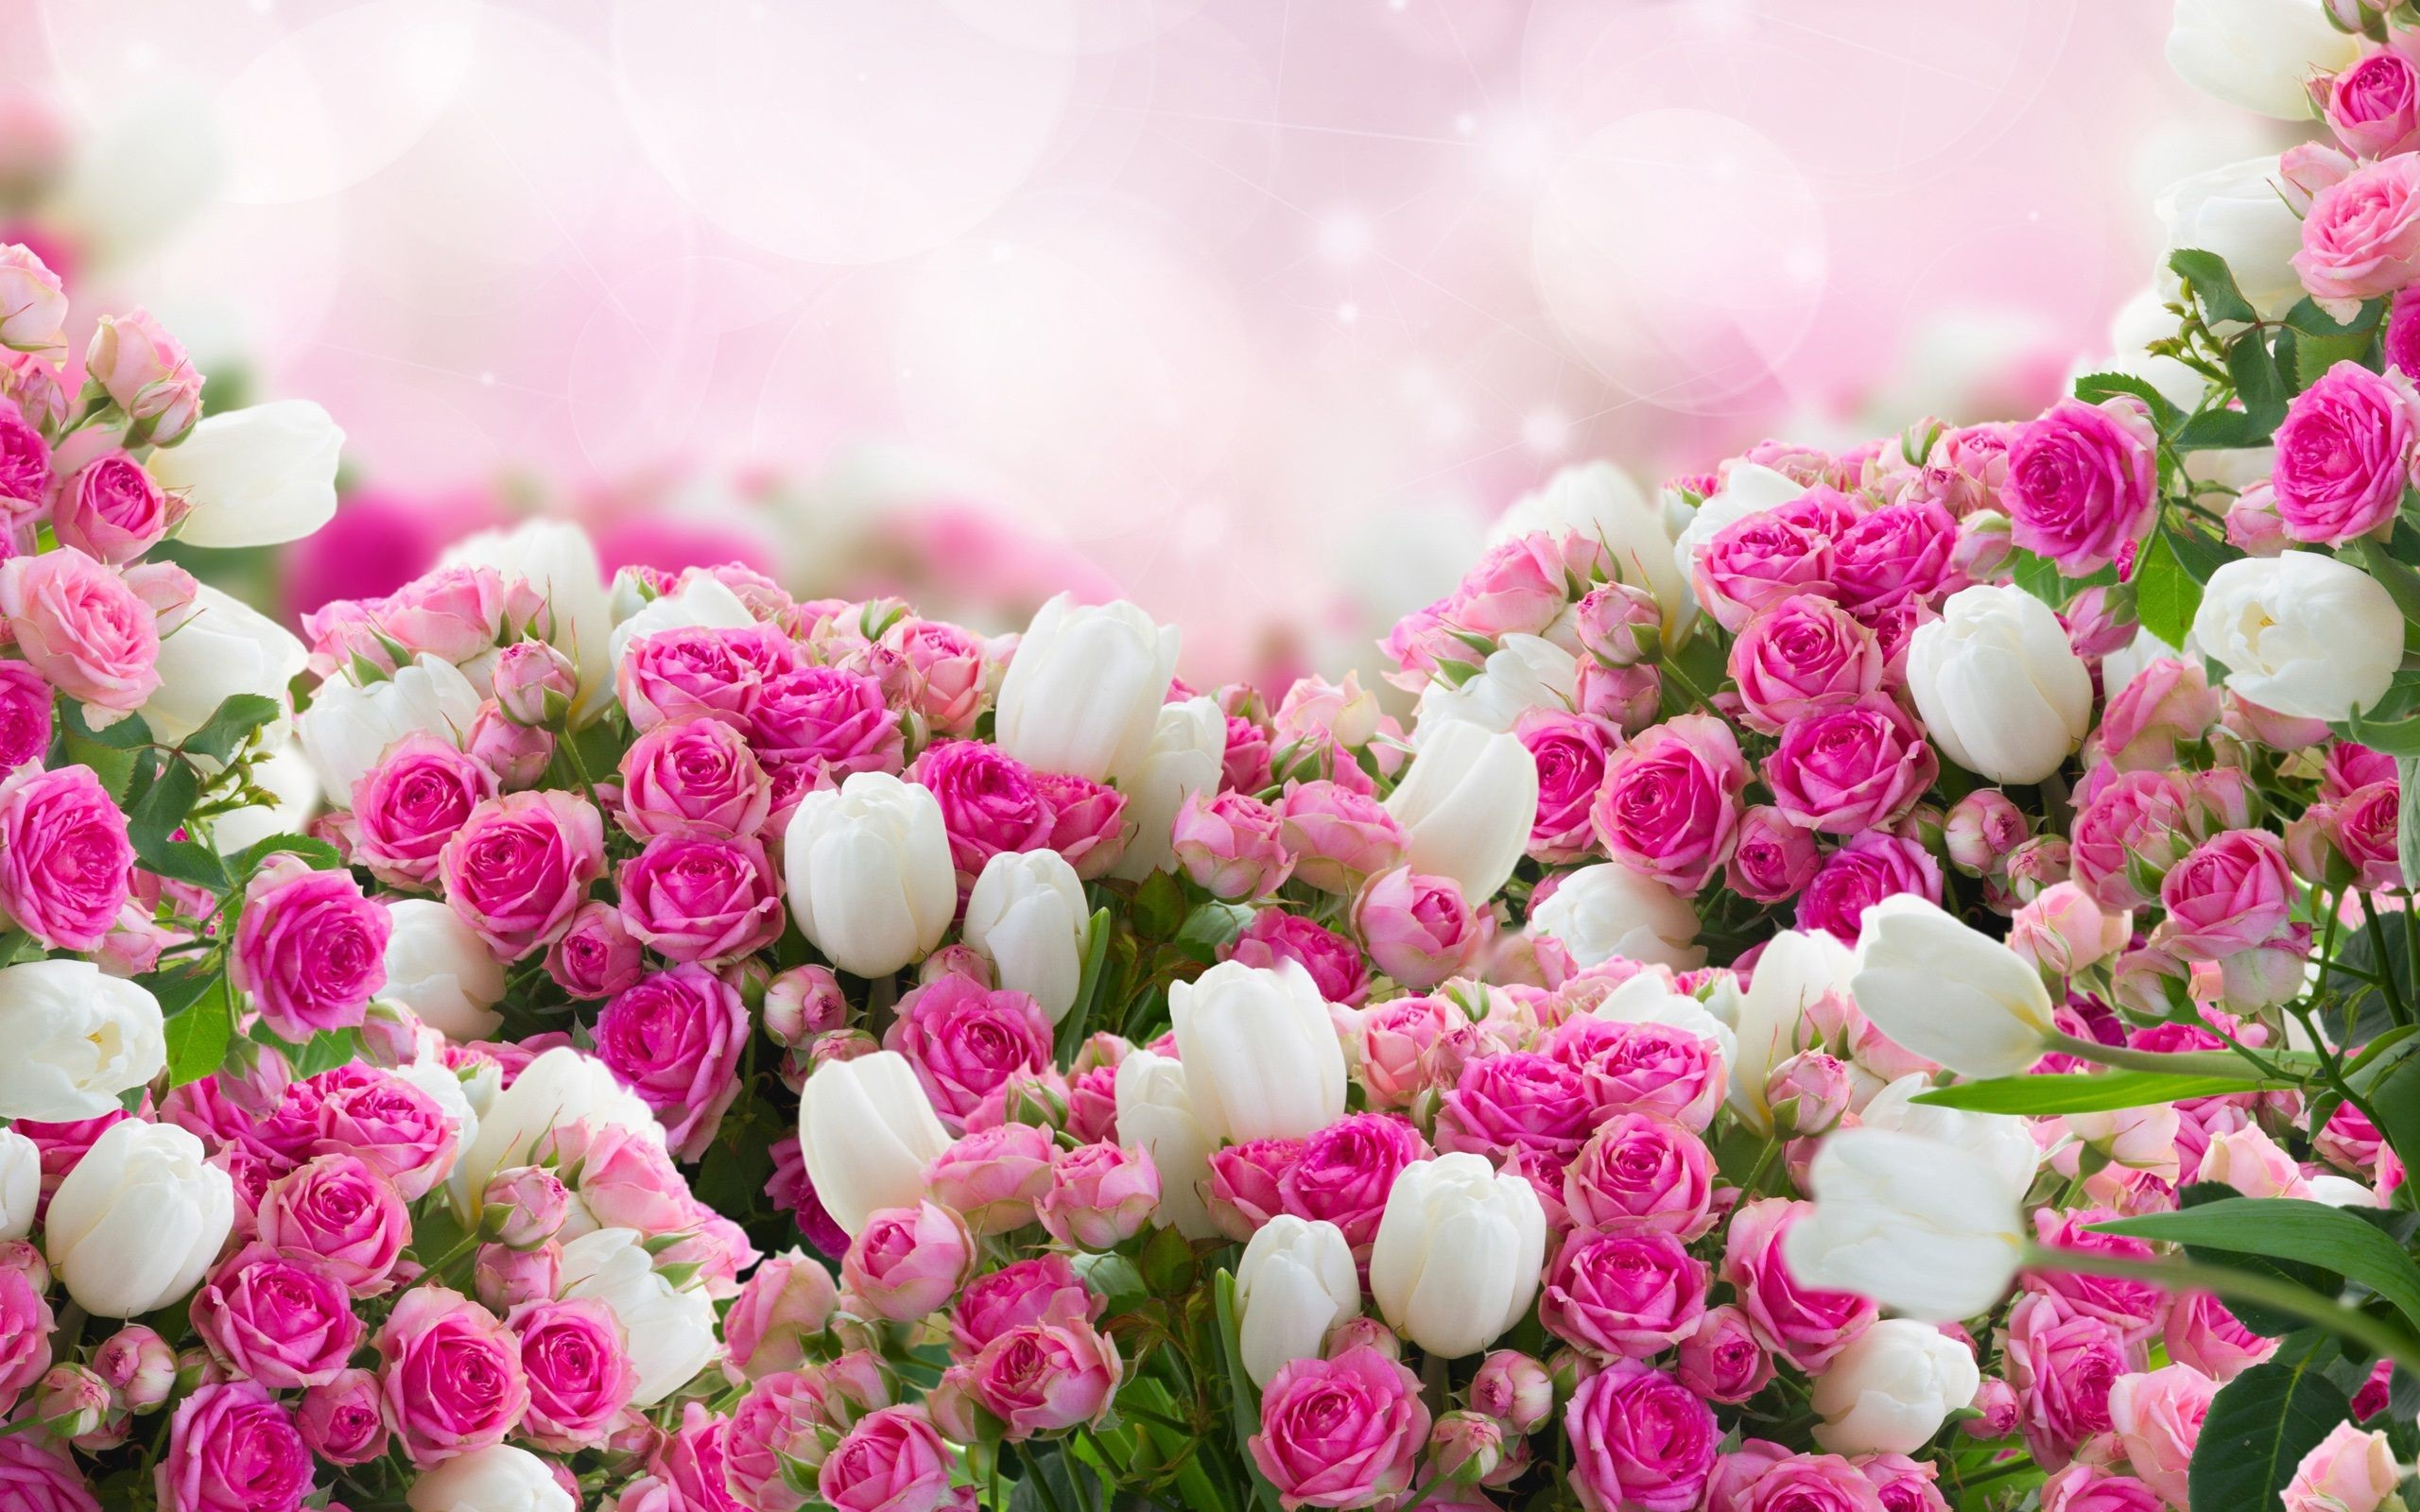 45 flowers wallpapers download free beautiful full hd pink mightylinksfo